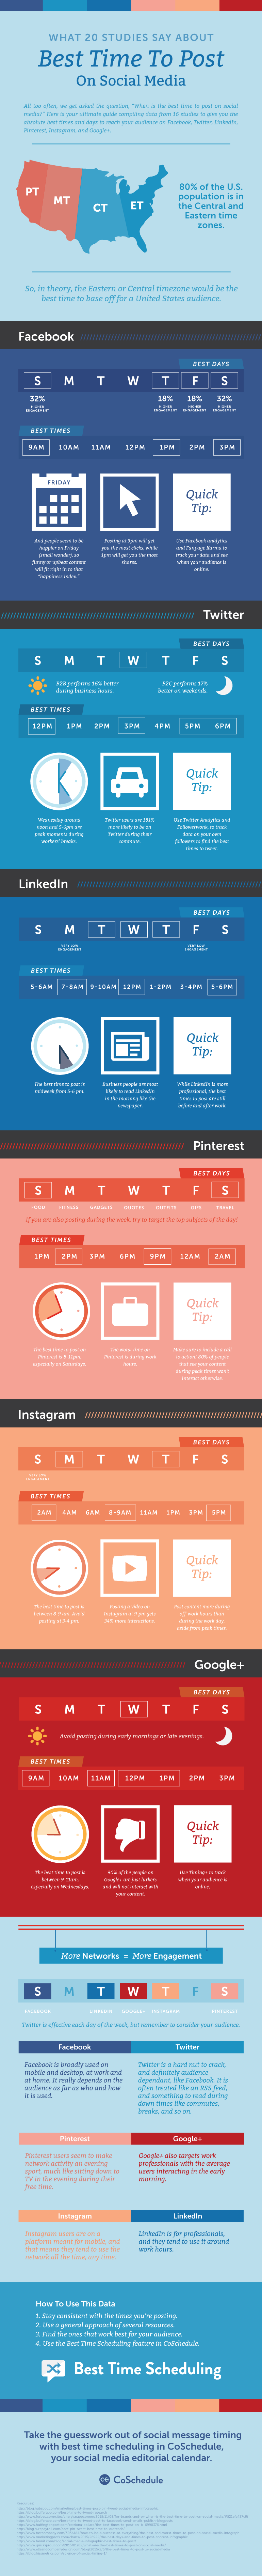 Blog_Nathan_BestTime-New-infographic.png